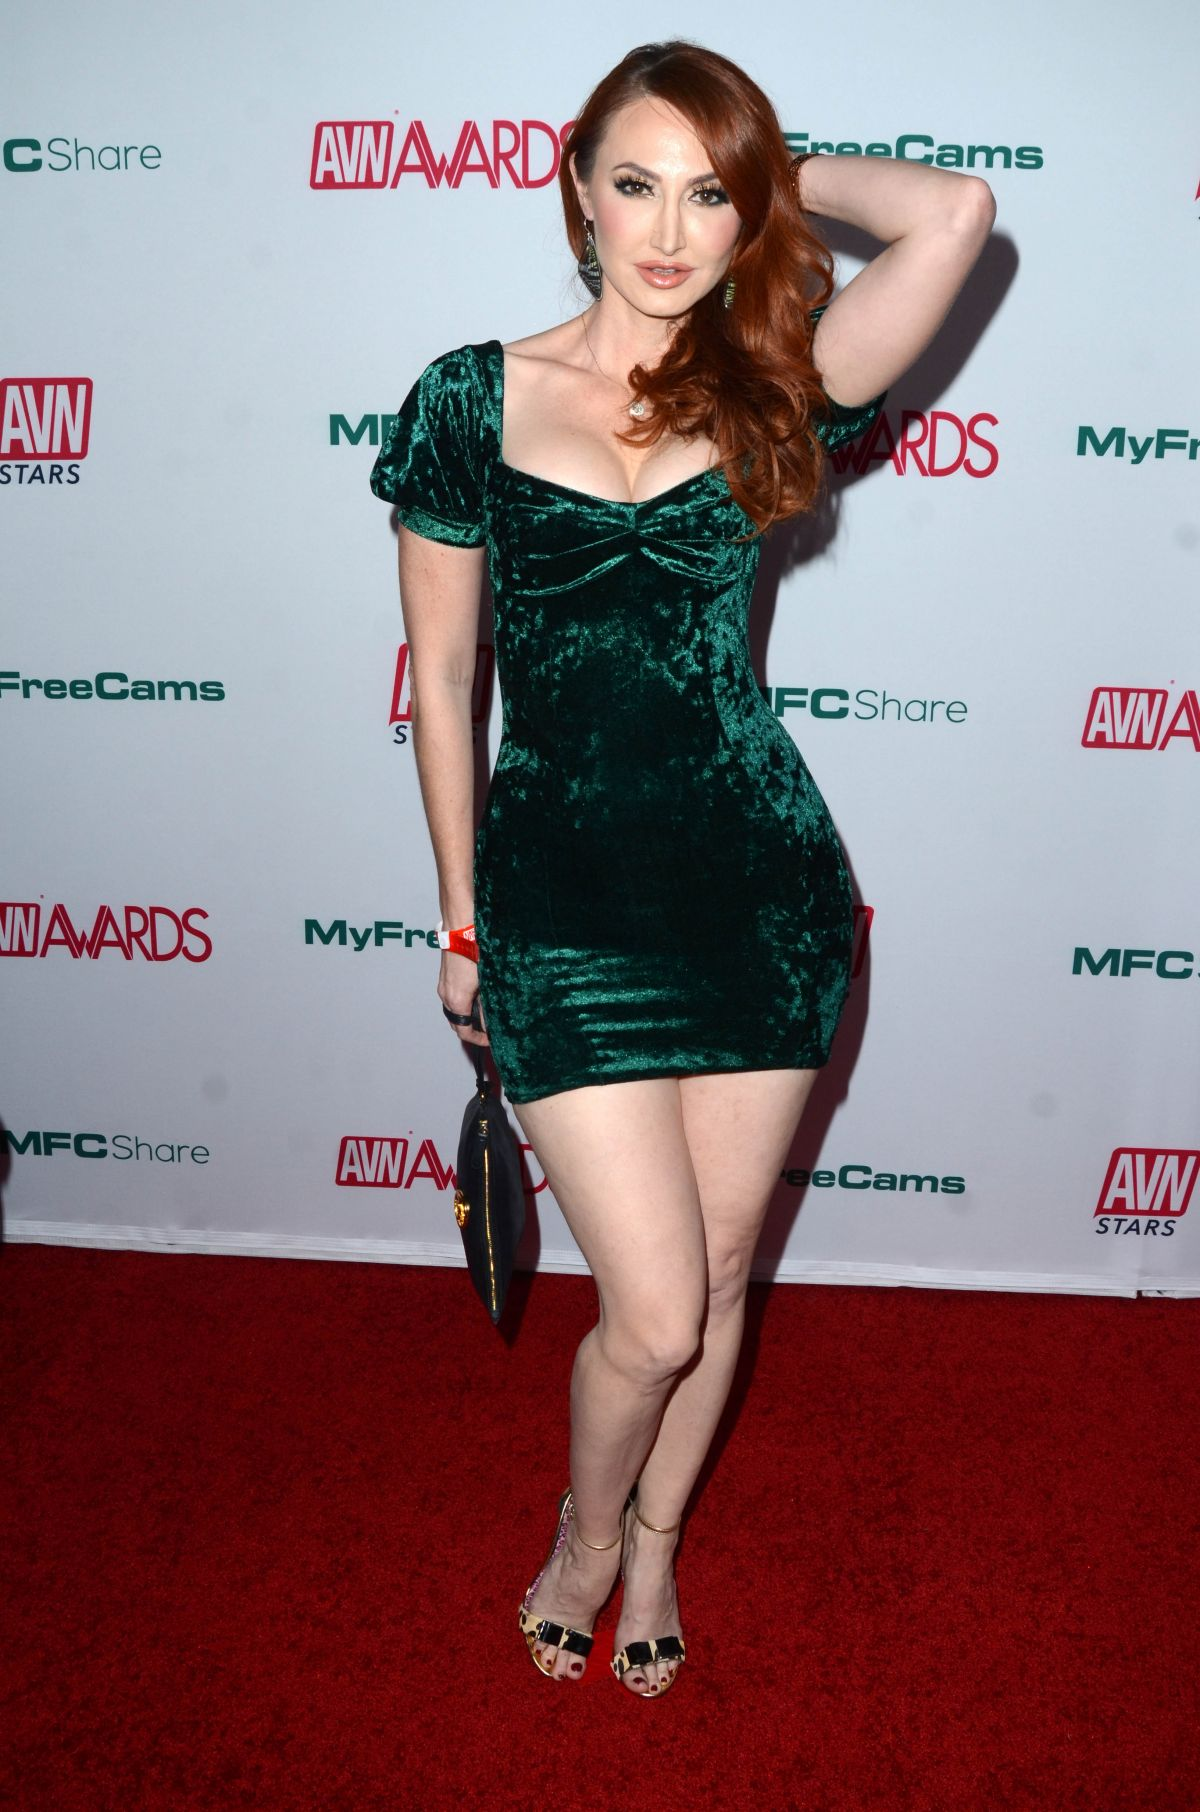 CHRISTY LOVE at AVN Awards Nominations Announcement in